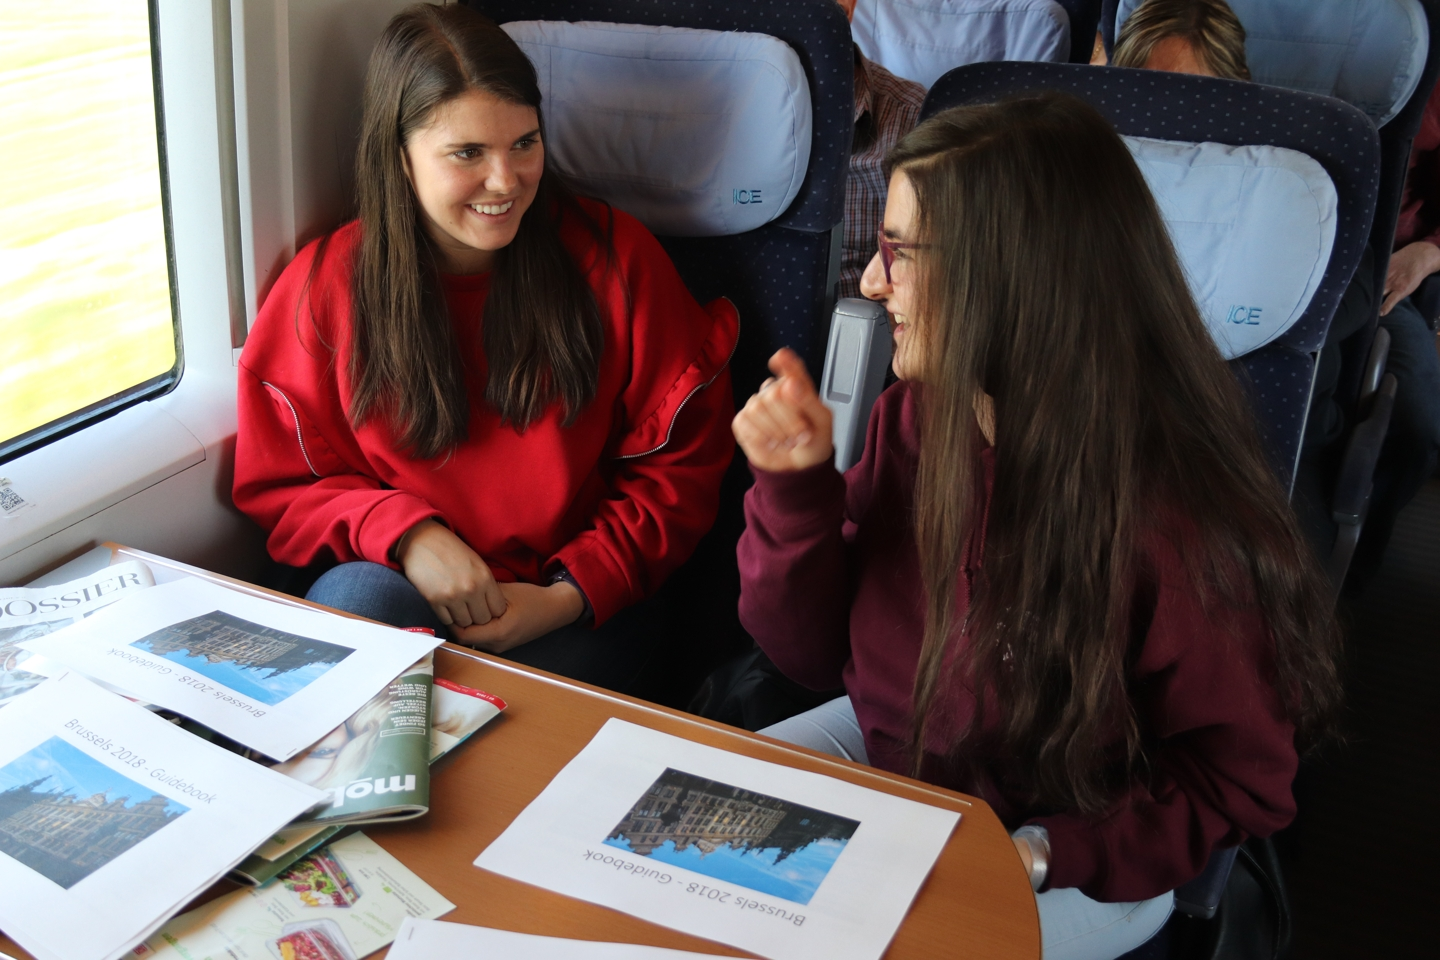 Two students talking in the train